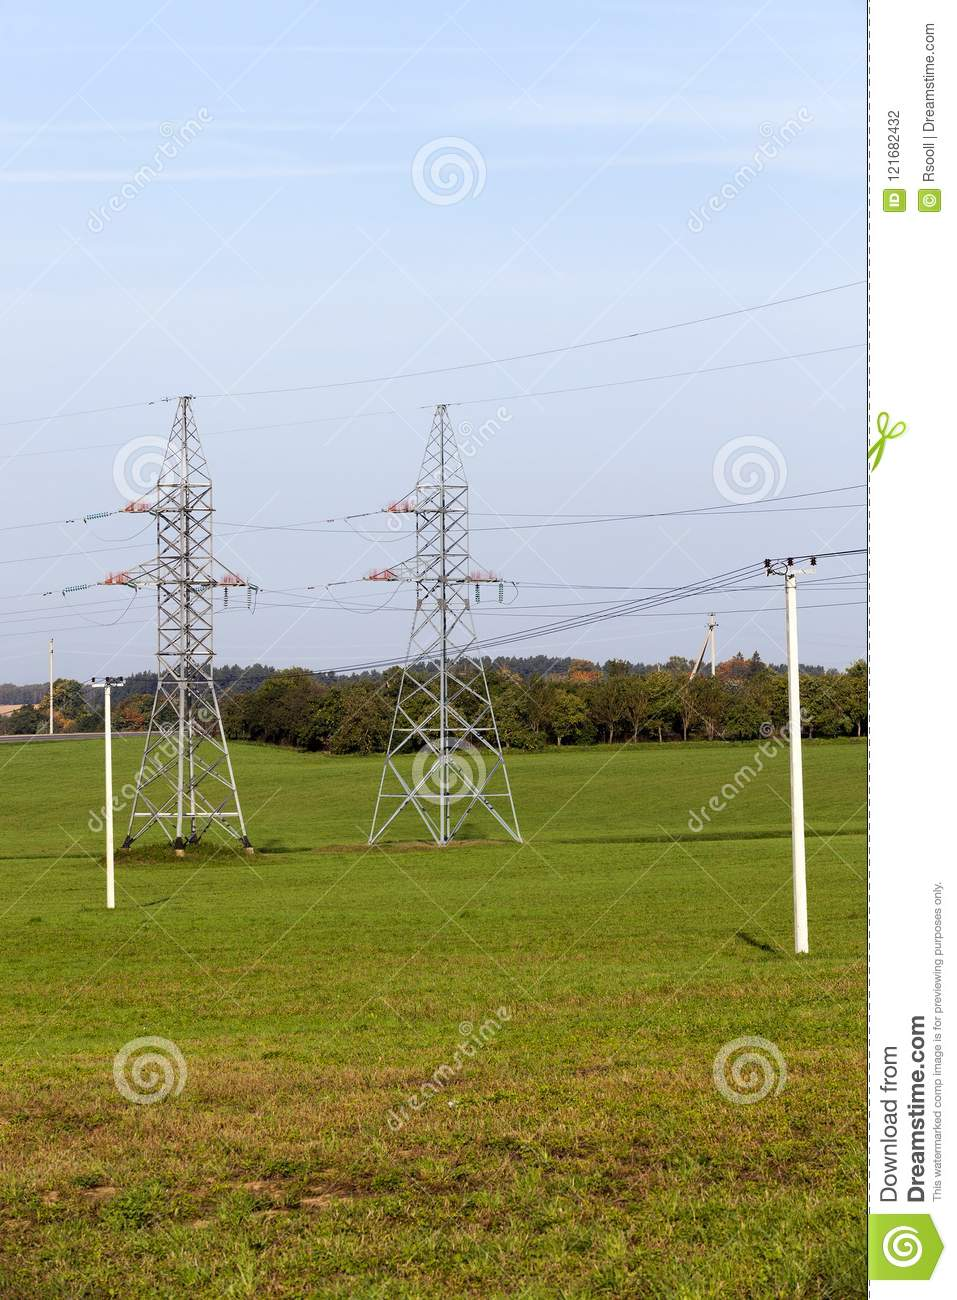 High-voltage pylons